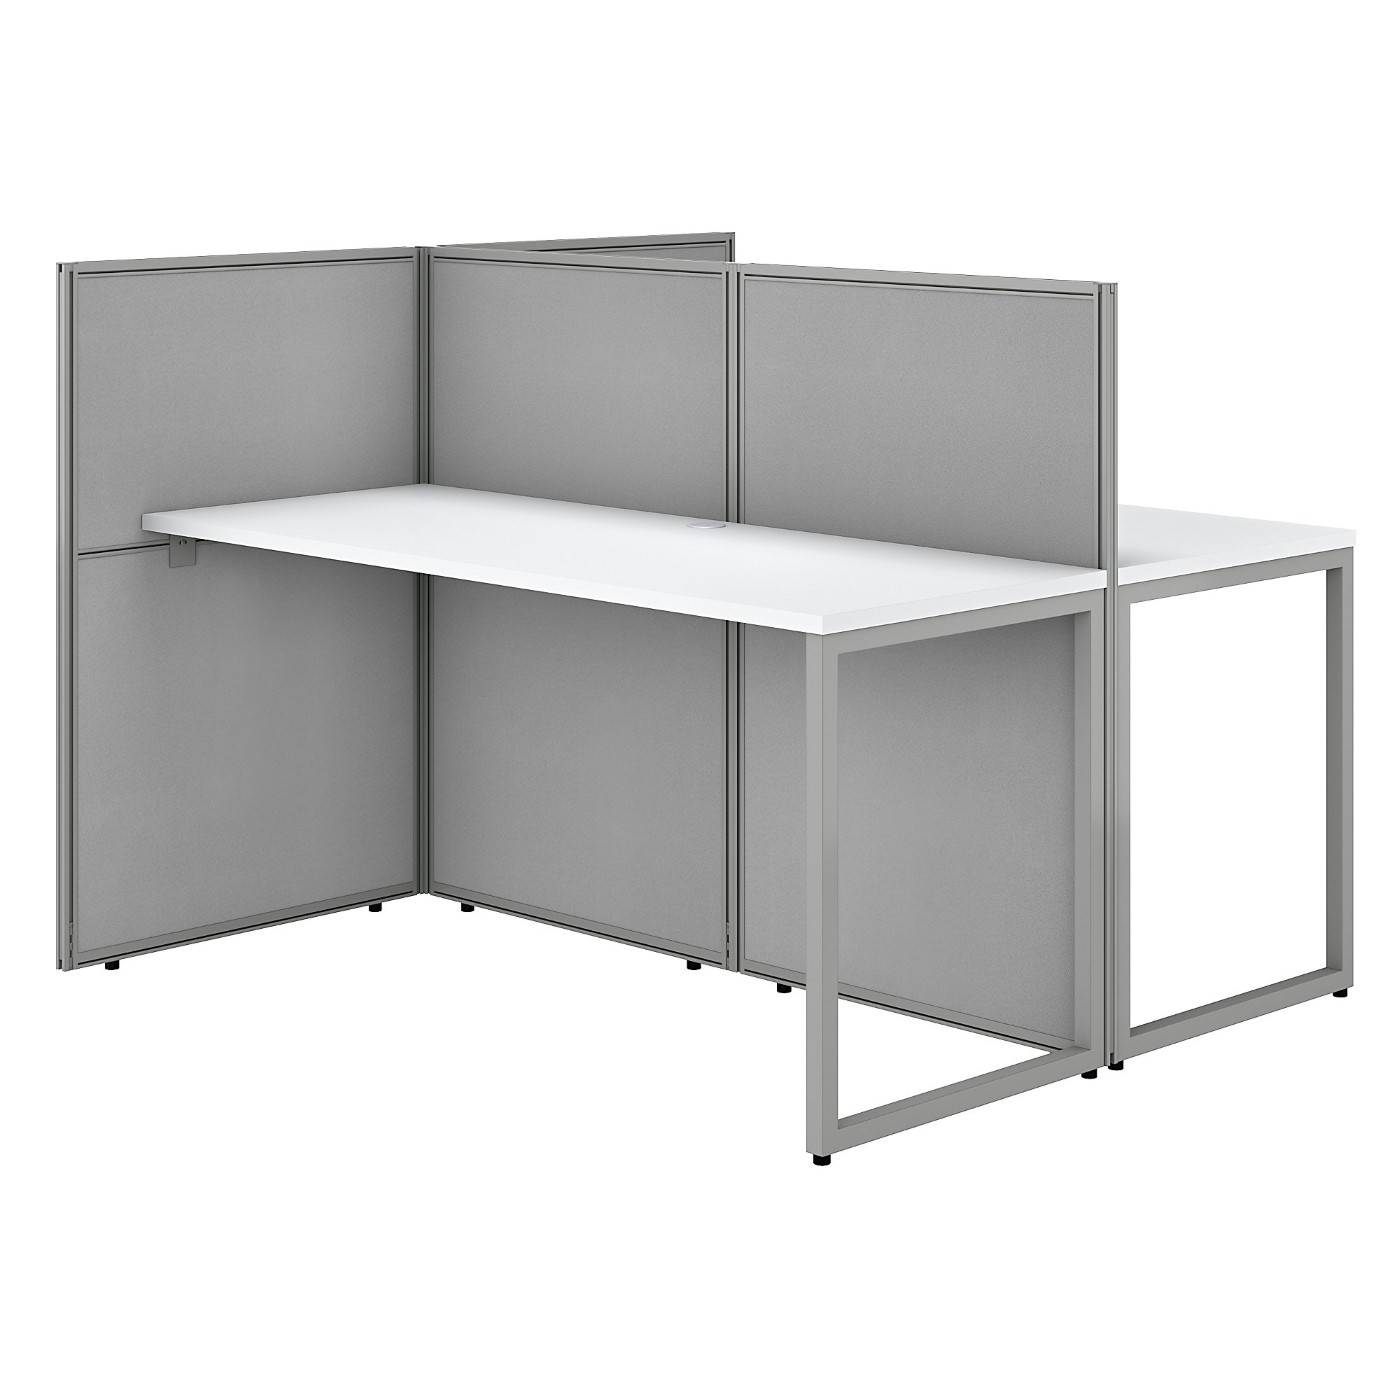 BUSH BUSINESS FURNITURE EASY OFFICE 60W 2 PERSON CUBICLE DESK WORKSTATION WITH 45H PANELS. FREE SHIPPING